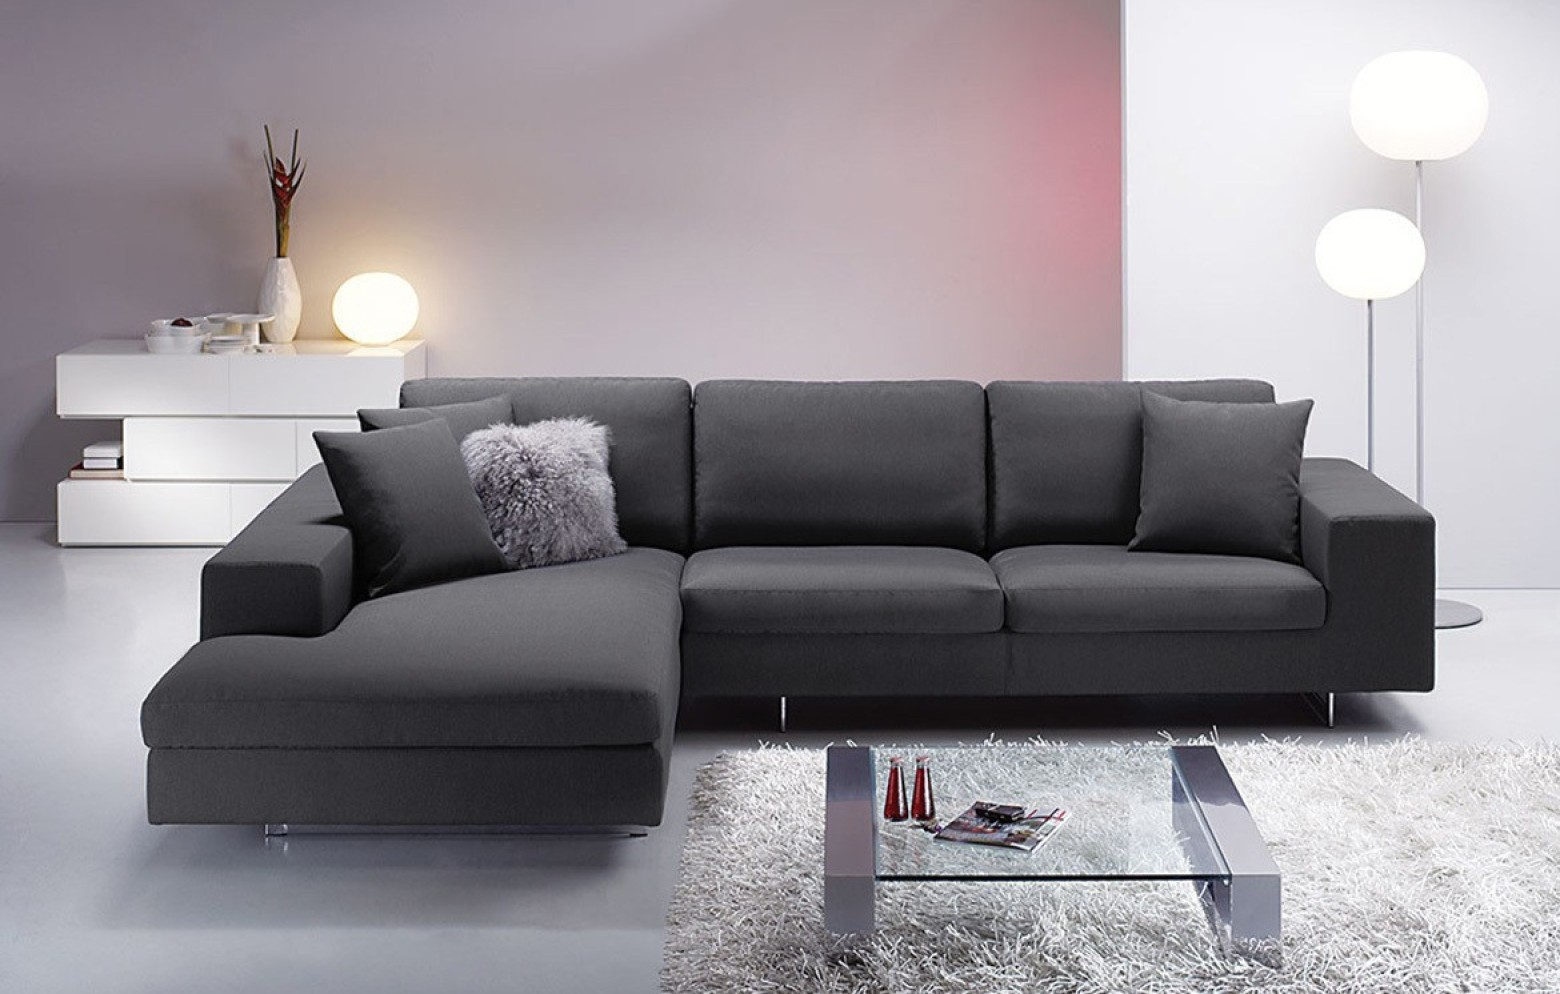 eck sofas sofa bezug schwarz lovely ecksofa grau schwarz ecksofas l form hd wallpaper pictures. Black Bedroom Furniture Sets. Home Design Ideas